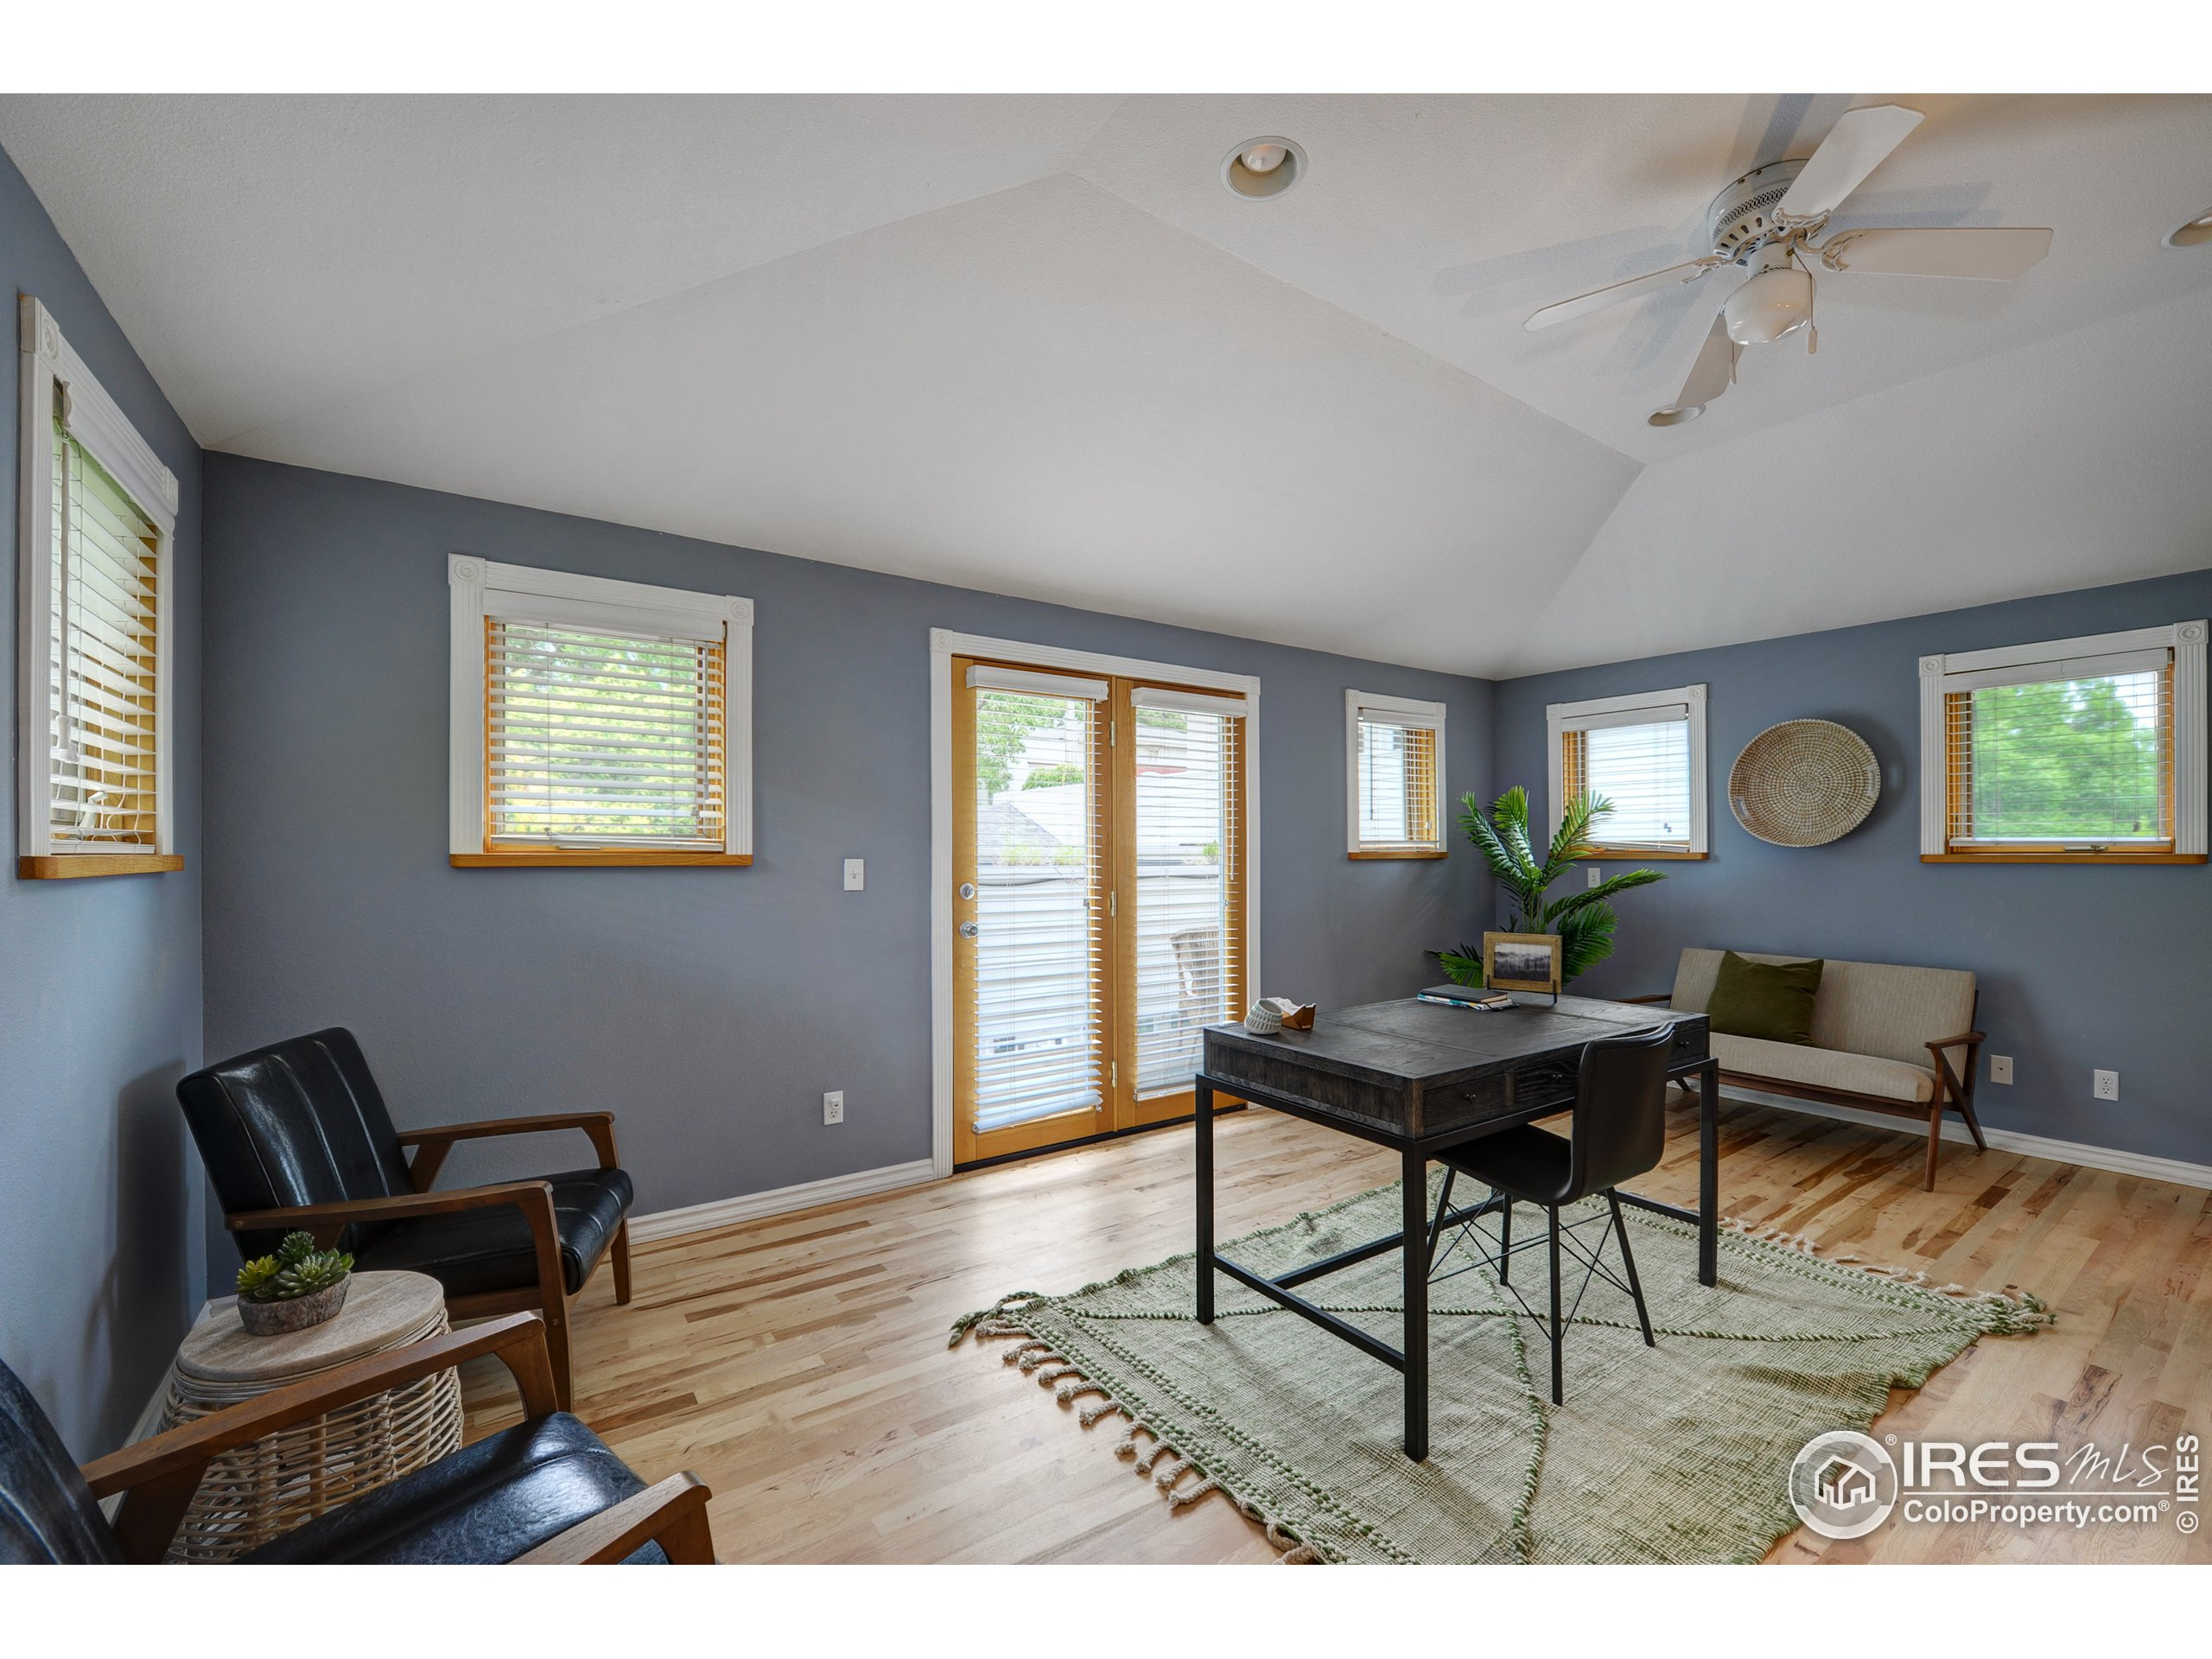 detached private workspace/office and powder room above garage